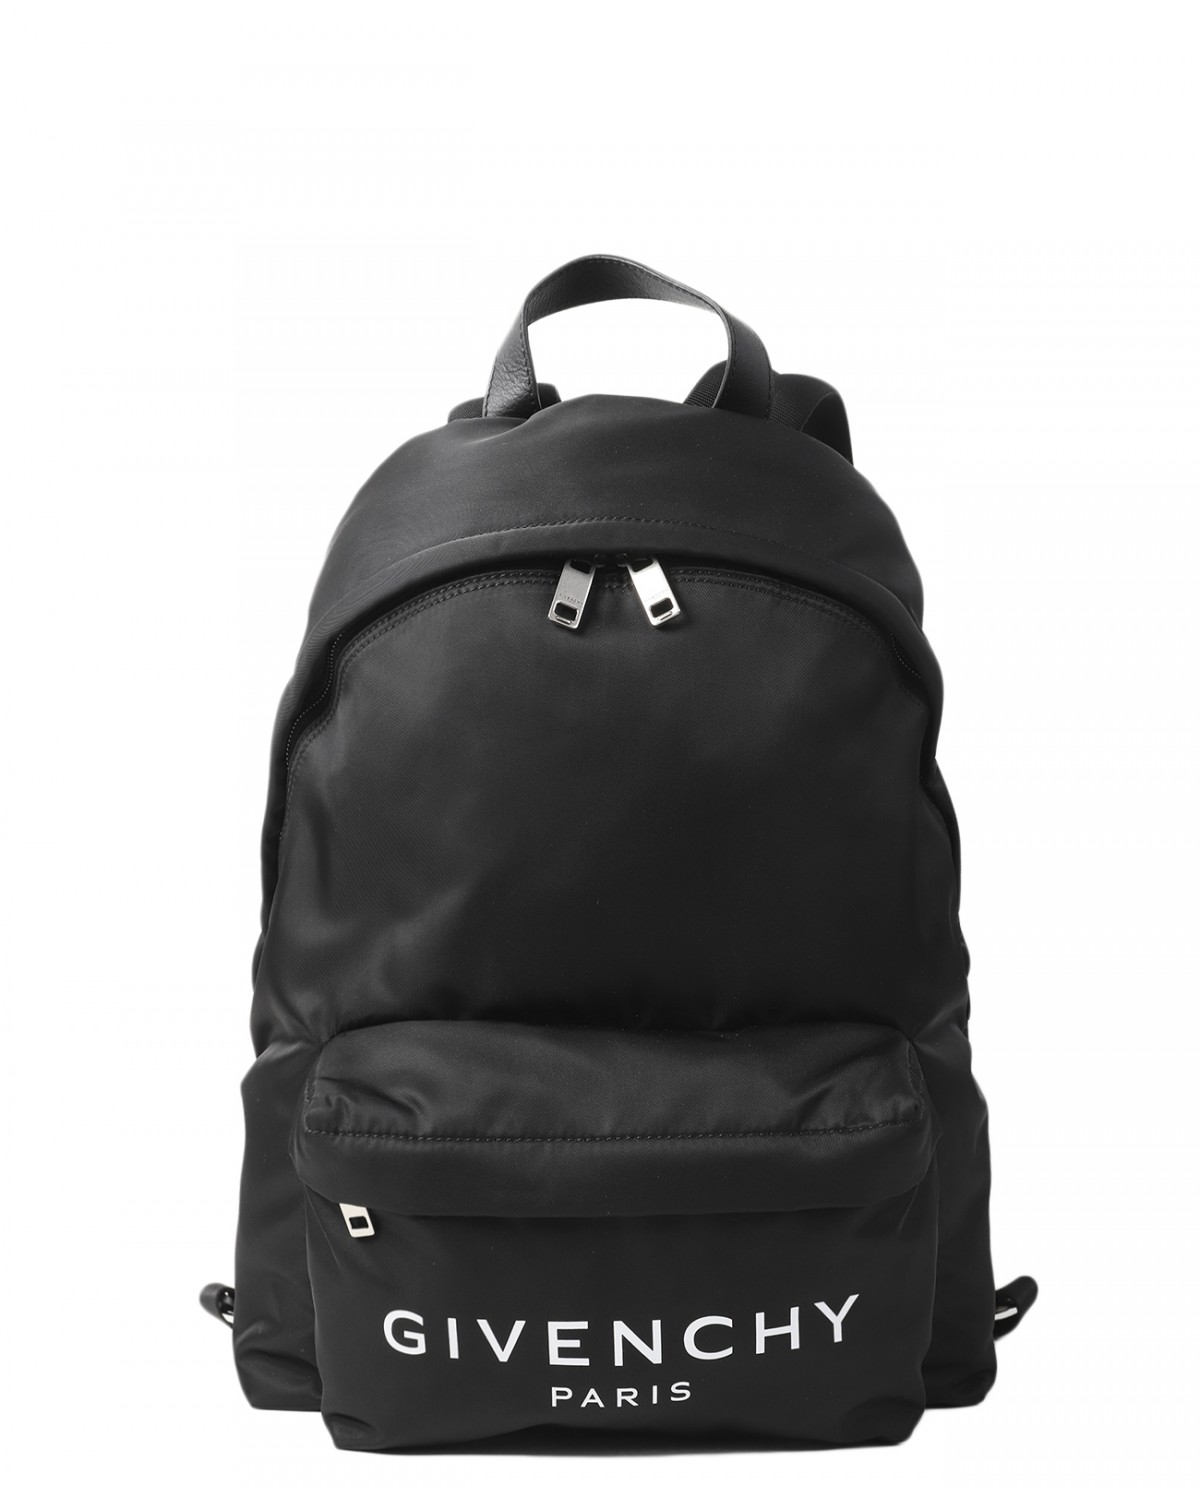 Givenchy black Urban backpack